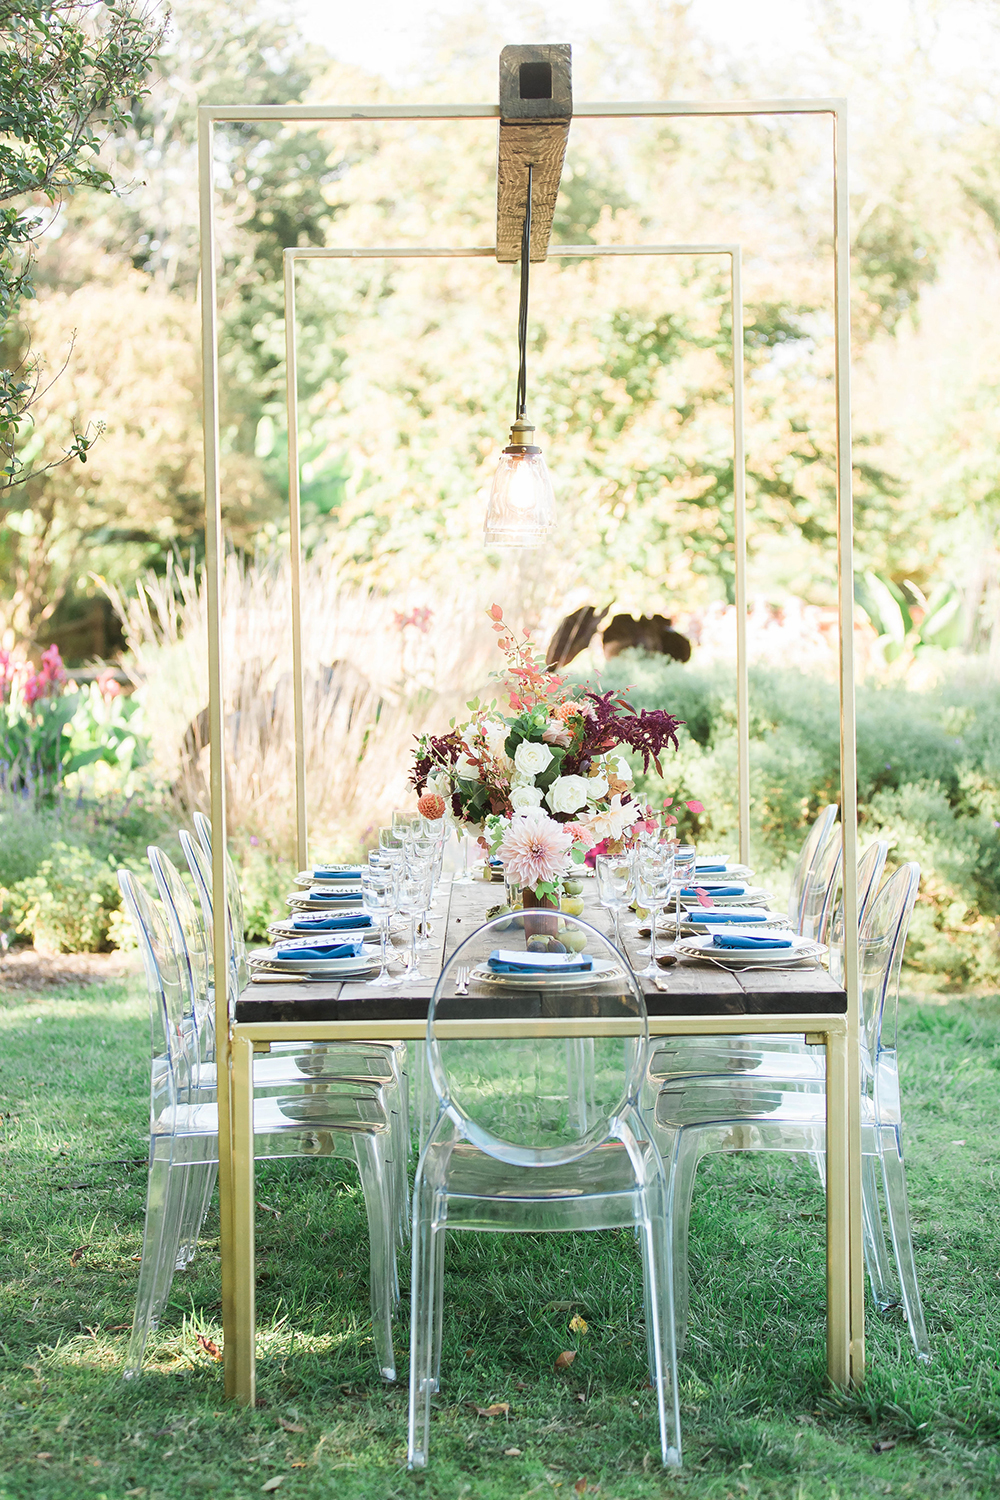 modern wedding receptions - photo by Candice Adelle Photography http://ruffledblog.com/historic-garden-wedding-inspiration